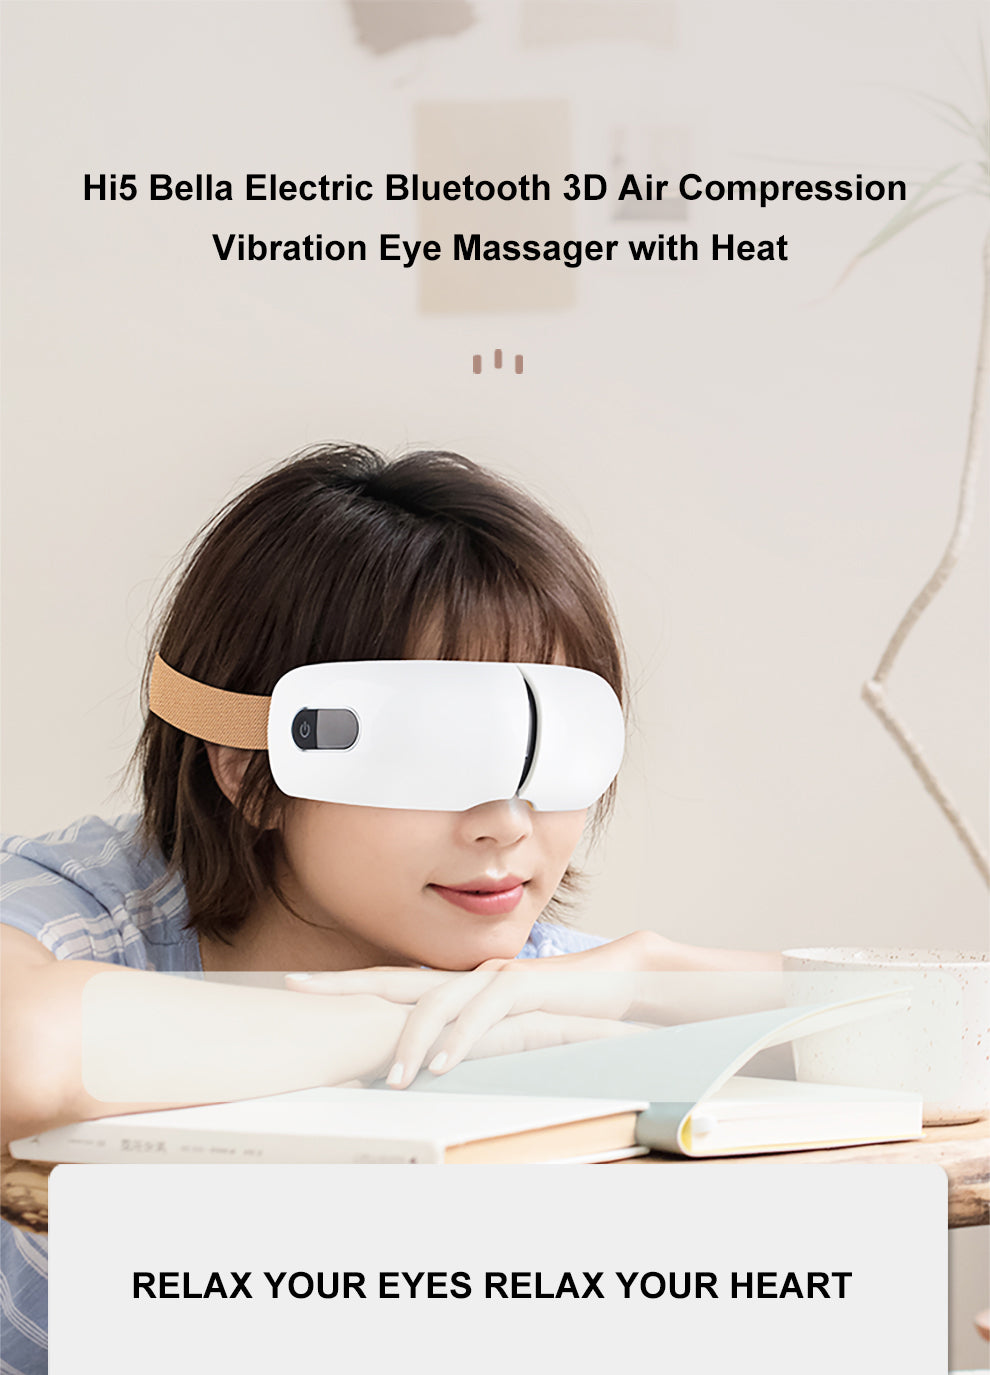 Hi5 Bella Electric Bluetooth 3D Air Compression Vibrating Eye Massager with Heat